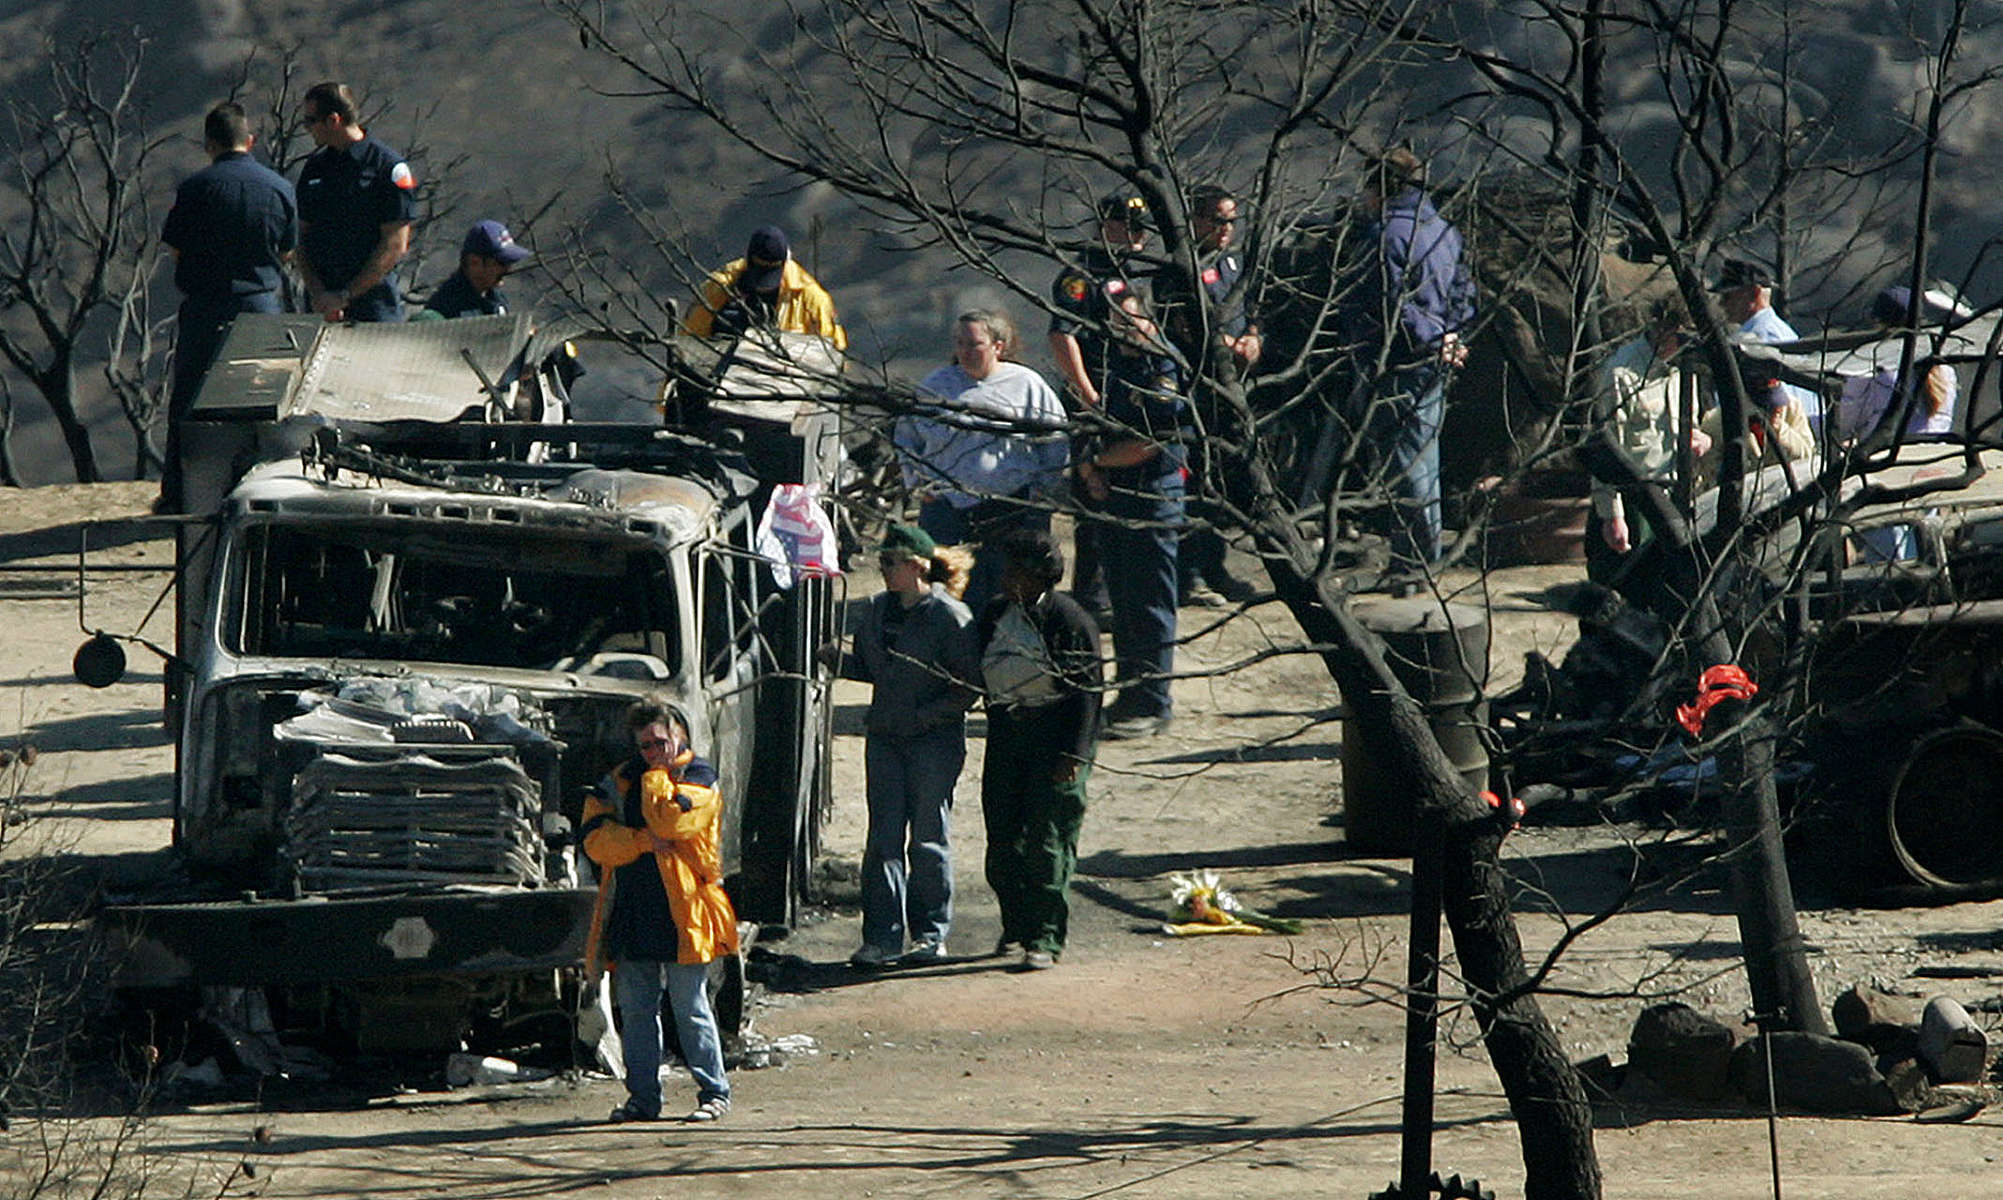 Firefighters and the family of U.S. Forest Service firefighter Jason McKay visit the site near Twin Pines, Calif., where McKay died along with four other members of his crewwhile fighting the Esperanza Fire. A fire storm overtook the house they were protecting and their vehicles. (The Press-Enterprise/ Mark Zaleski)